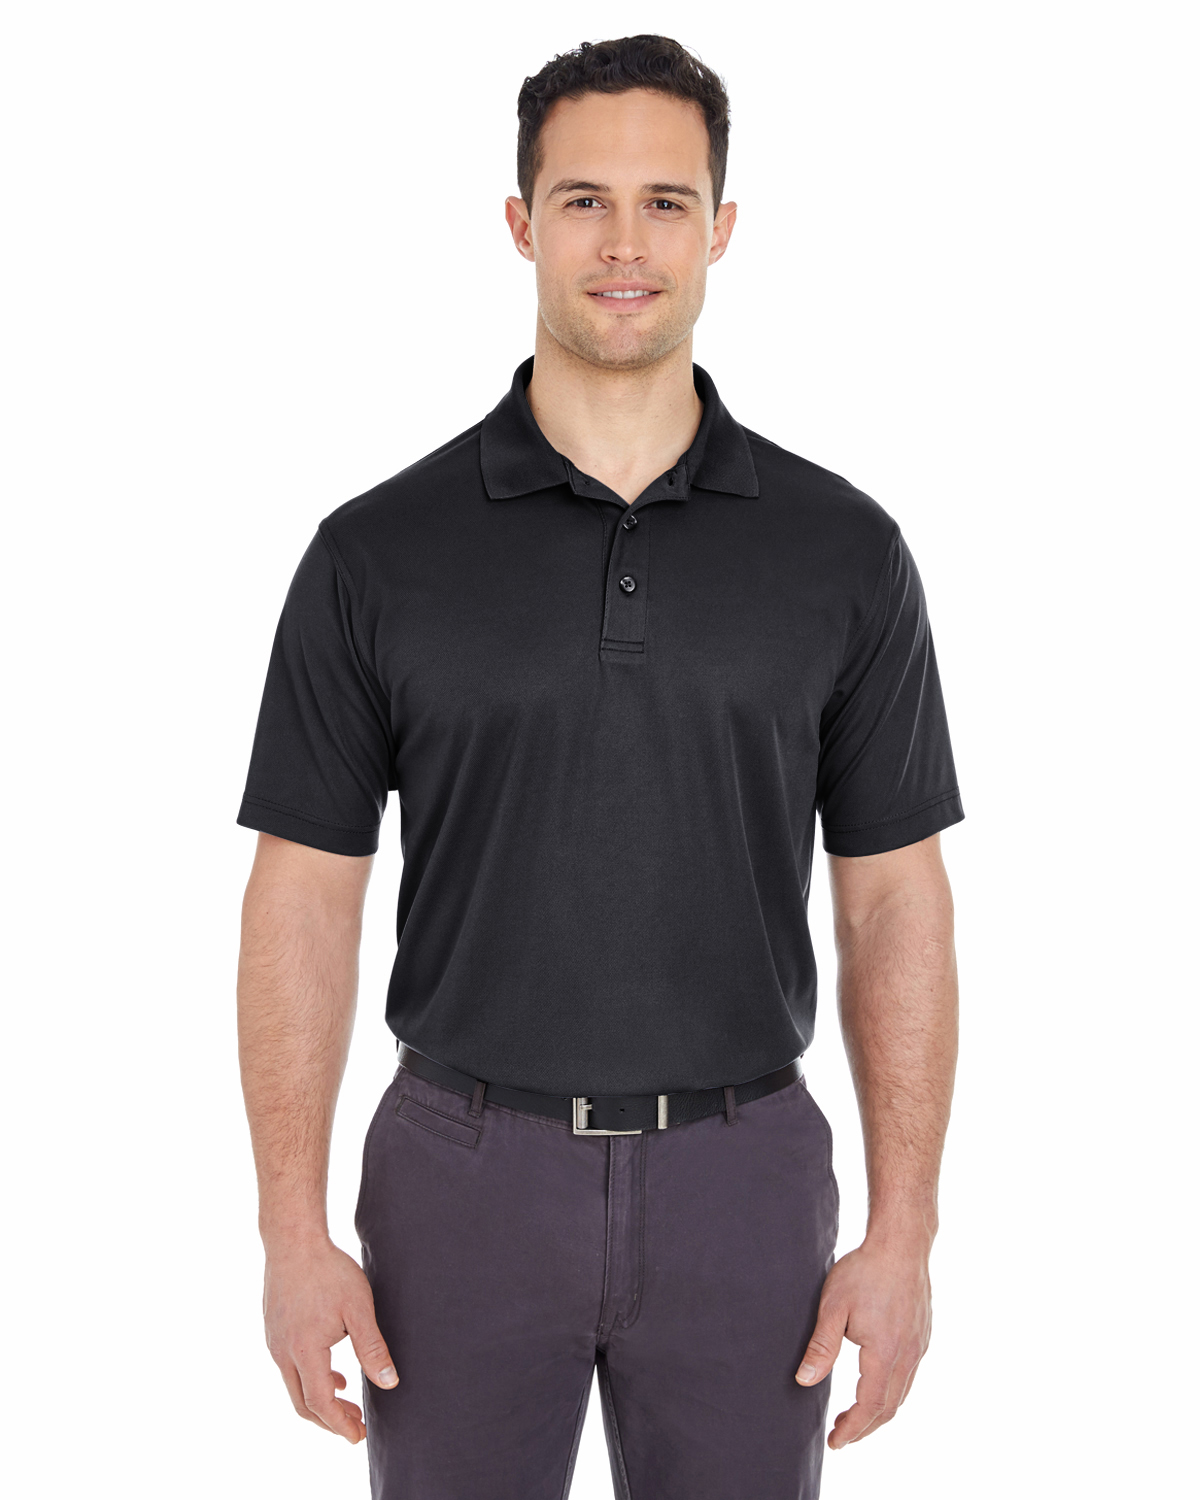 ULTRACLUB - 8210 UltraClub Men's Cool & Dry Mesh Pique ...